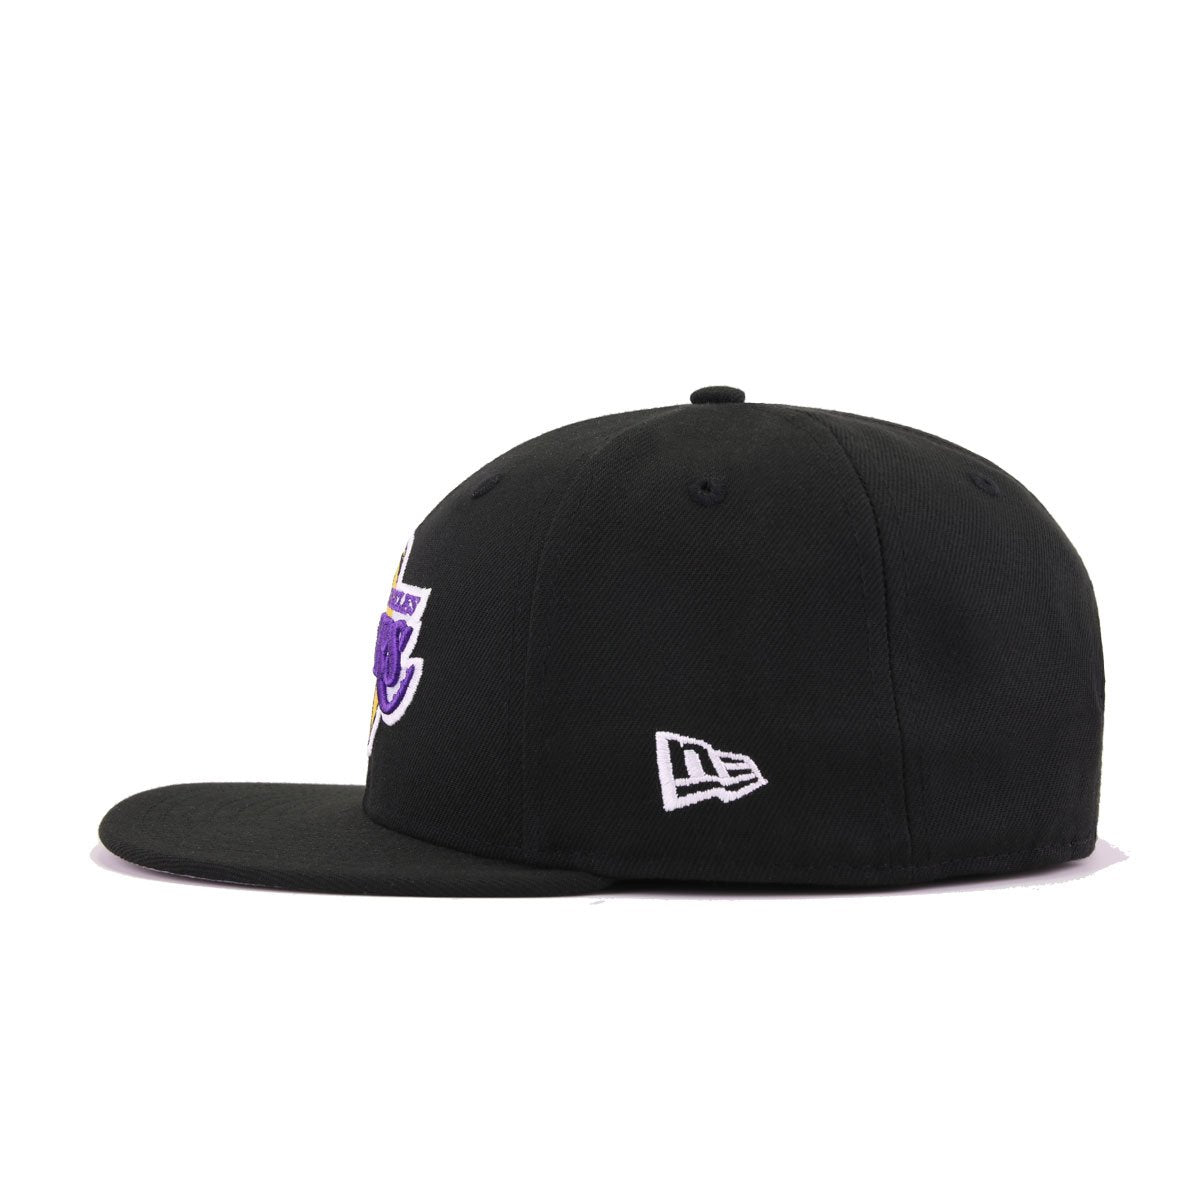 Los Angeles Lakers Black New Era 9Fifty Snapback